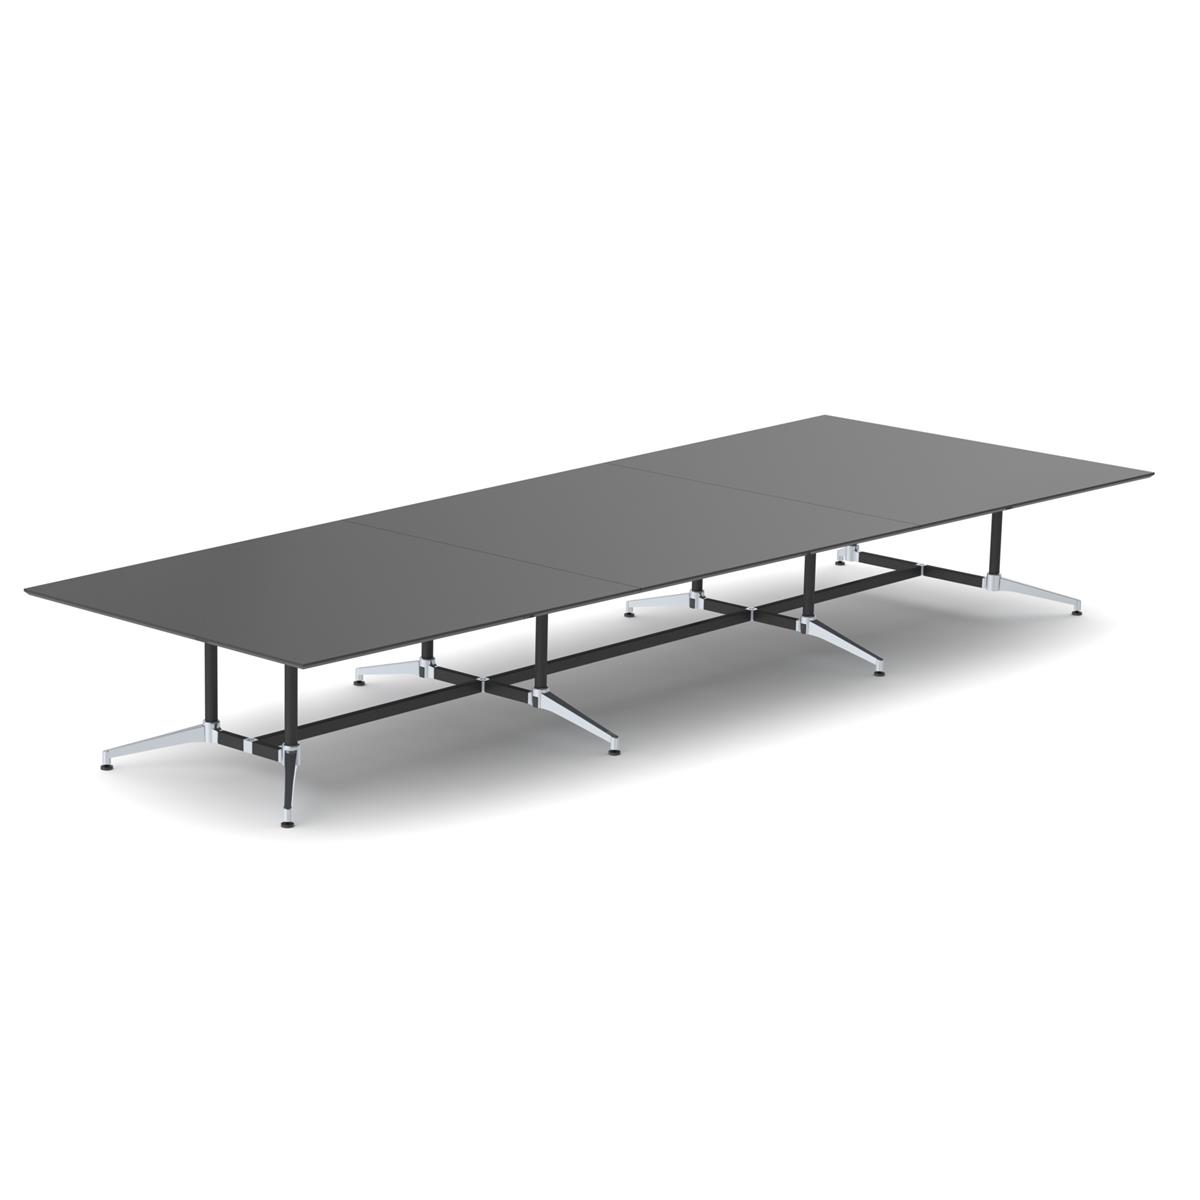 X1 Seamless Table Wedge Shape 680 x 140/180 - sort linoleum & sort / aluminium